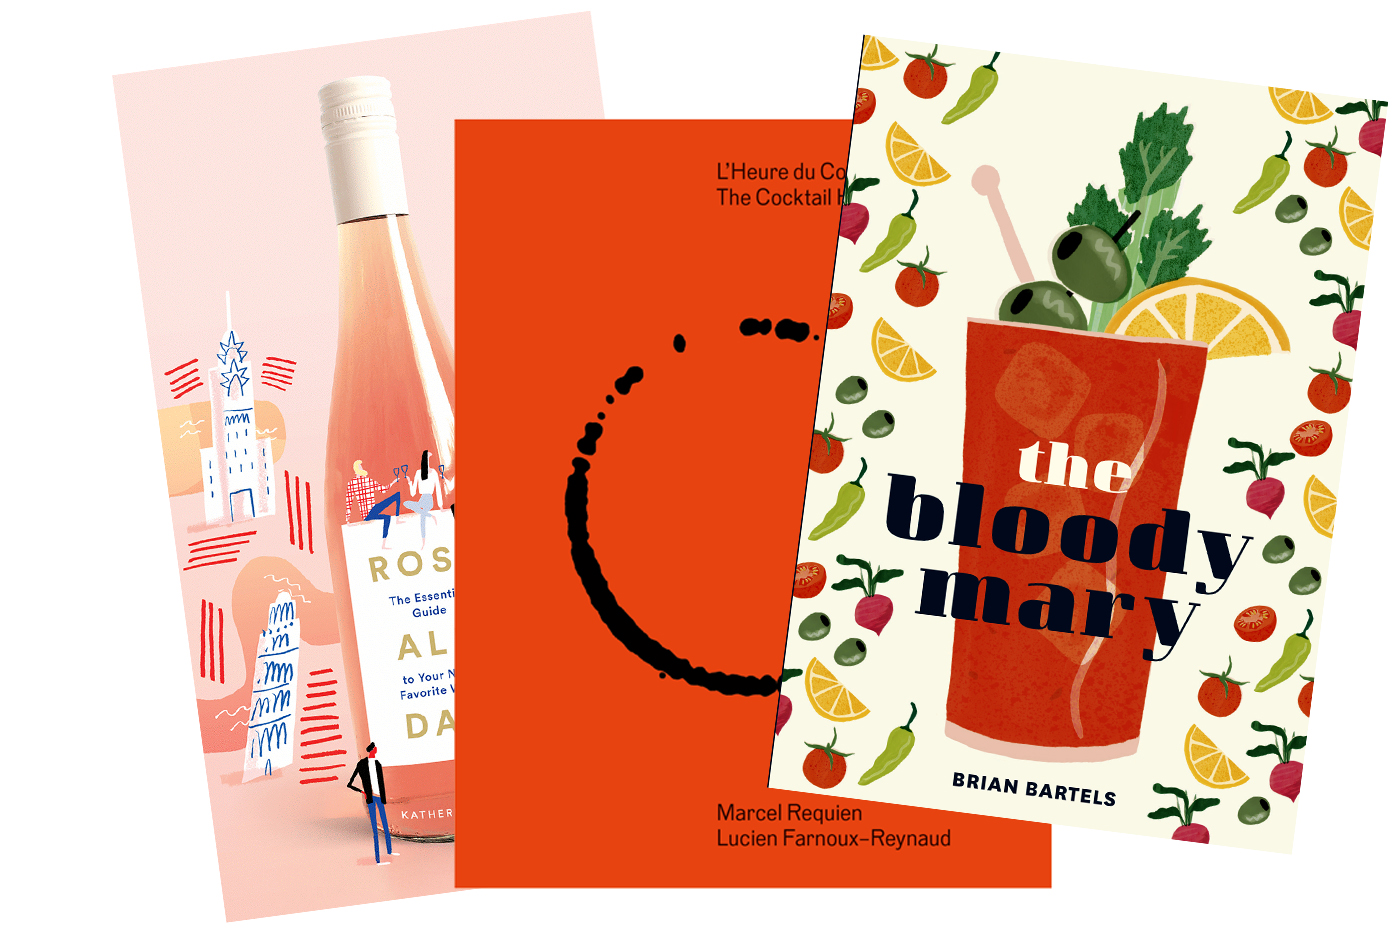 Ten new drink books to soak up knowledge from